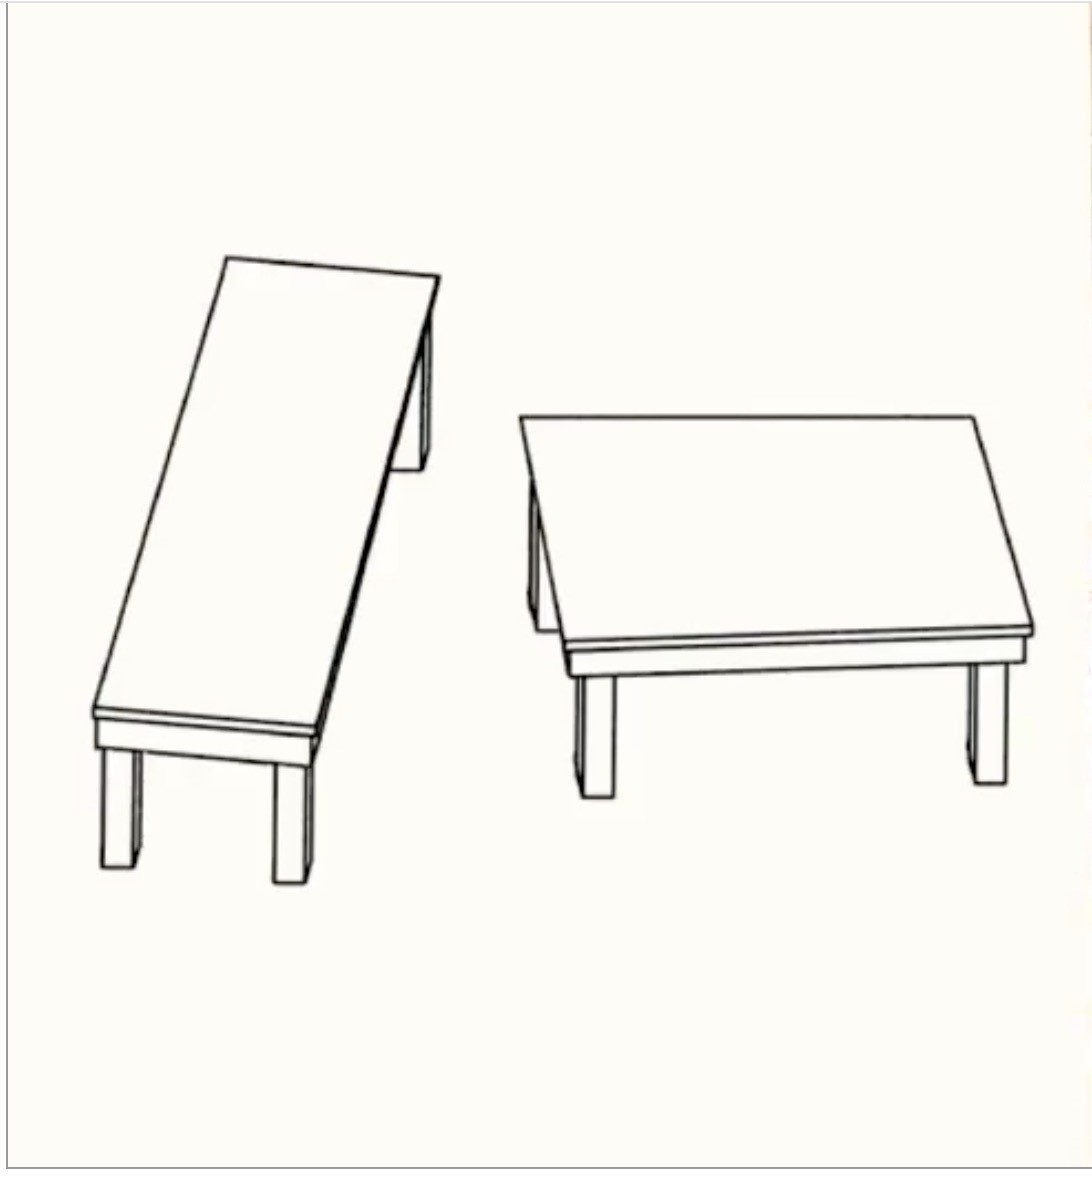 Two tables in diagram view, at an angle to each other.